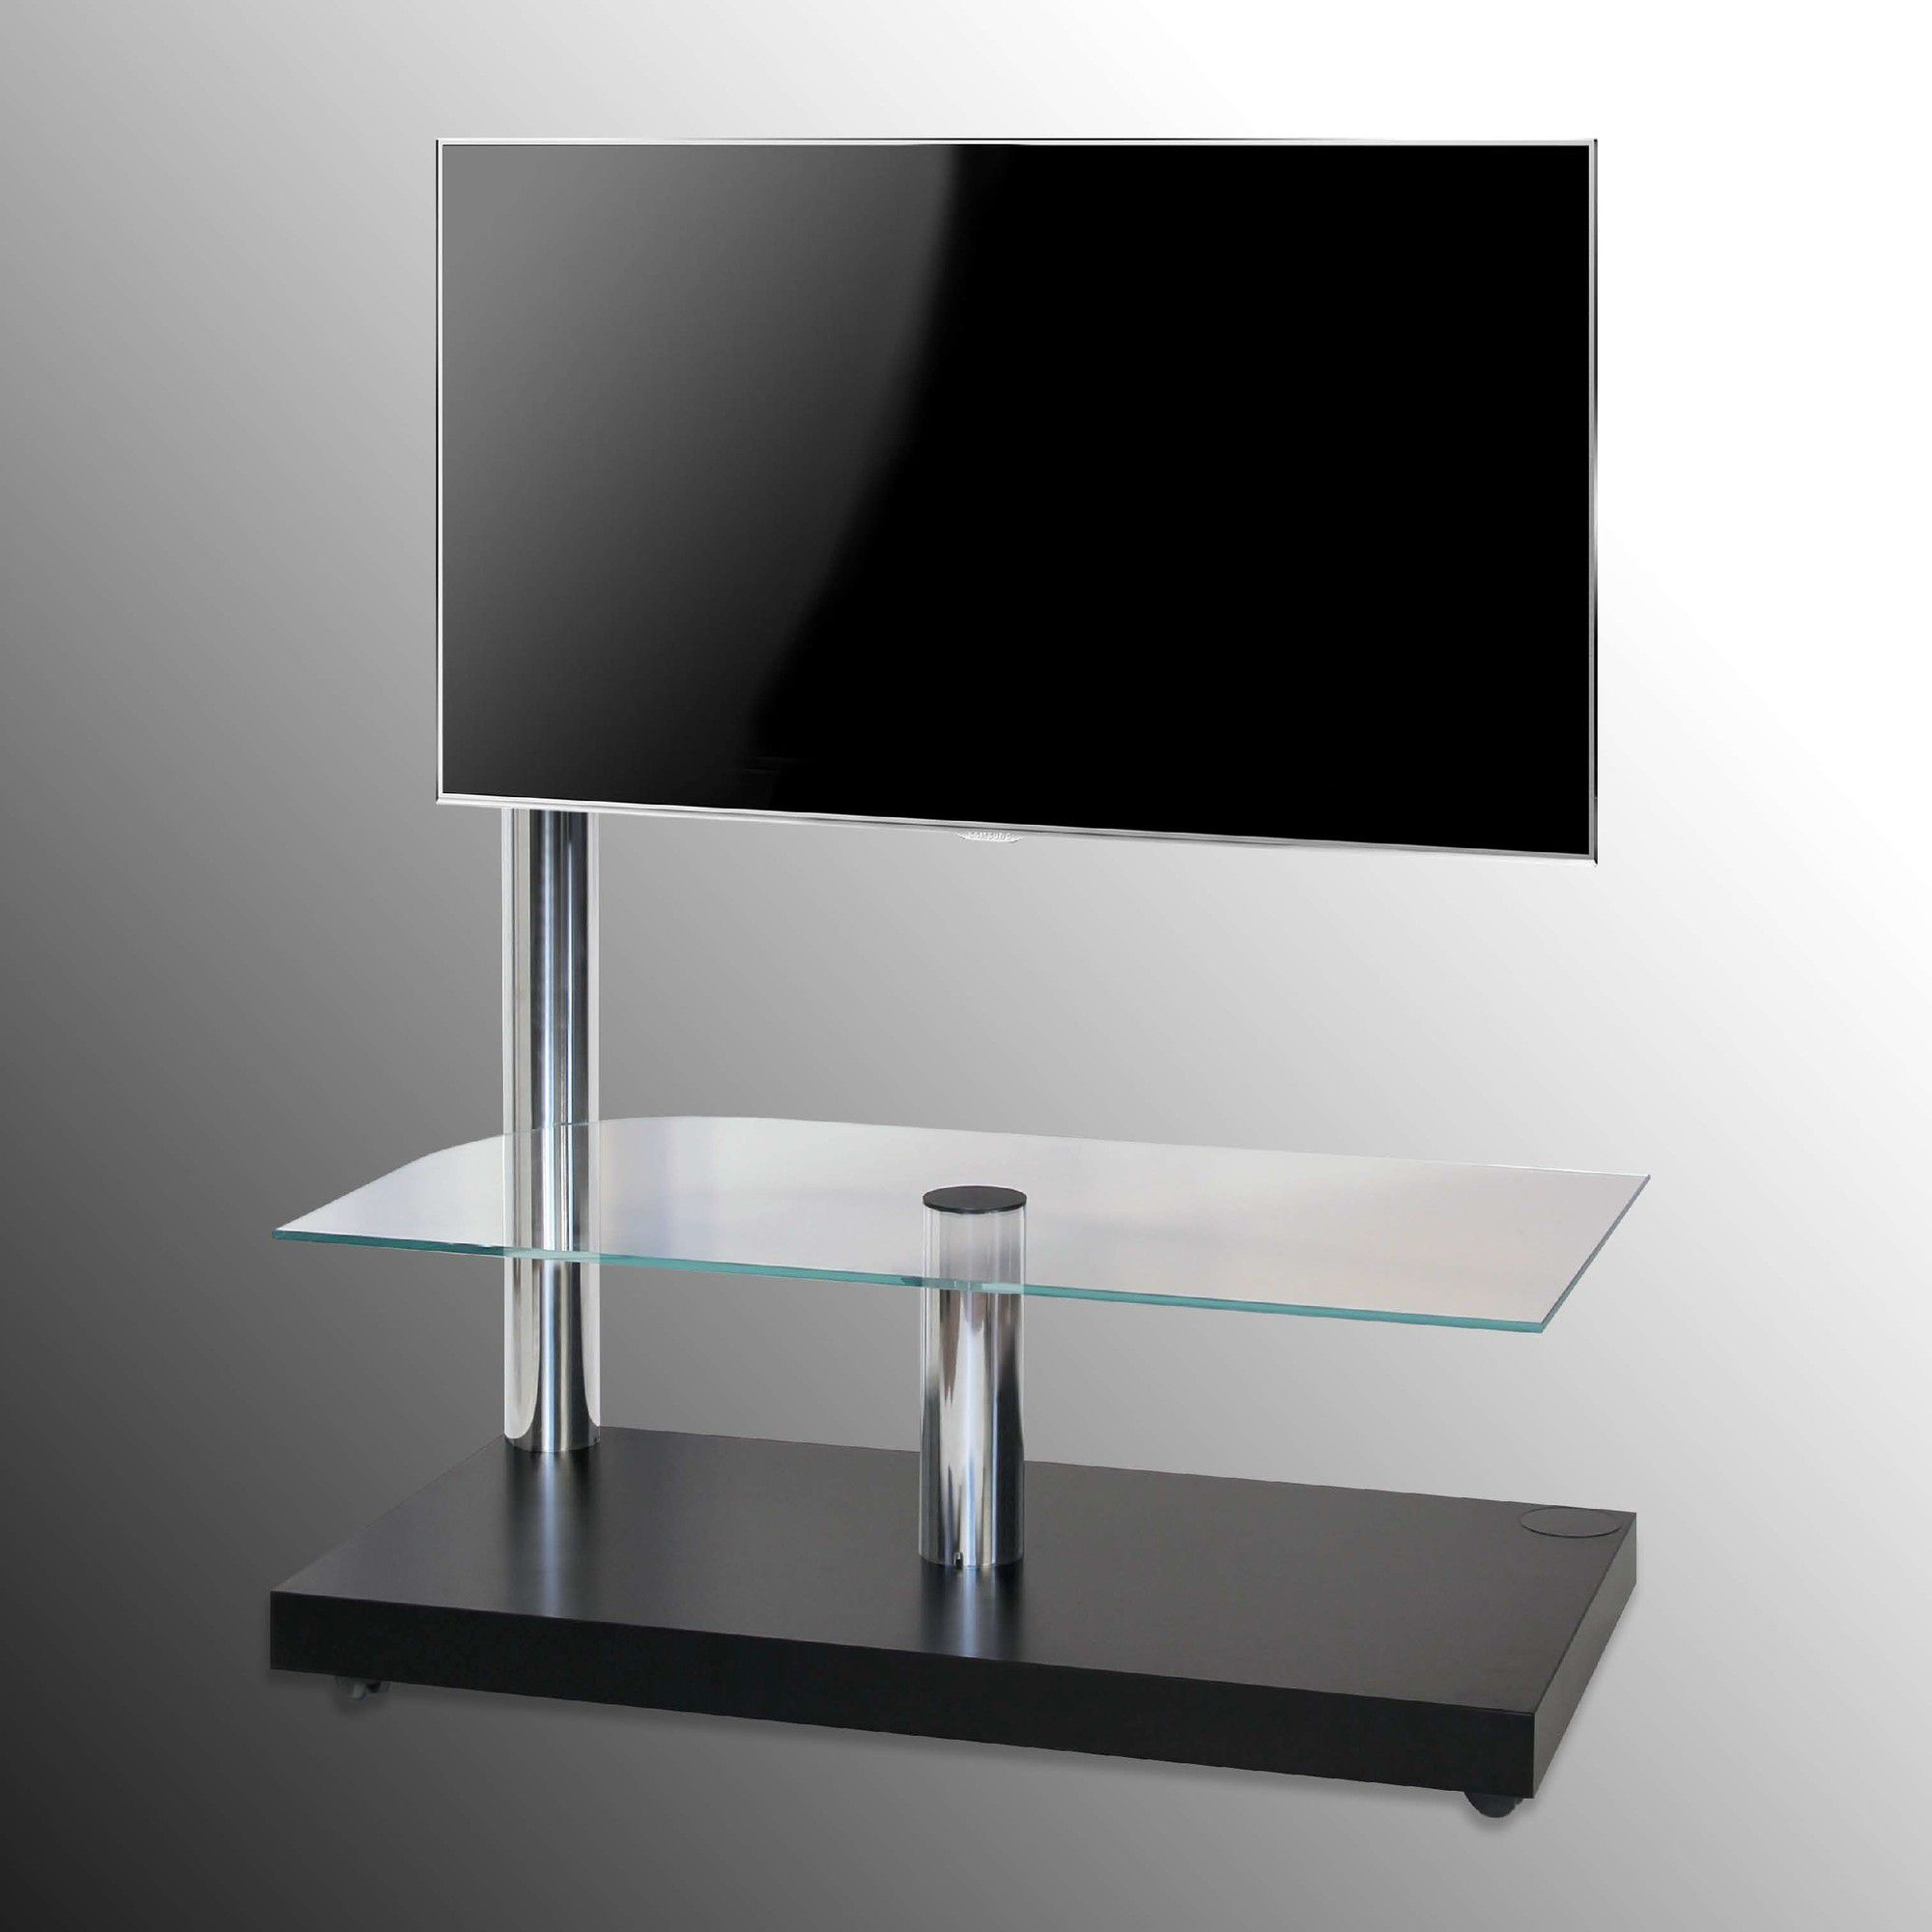 OMB Flag Tower Deluxe TV Stand at Tesco Direct